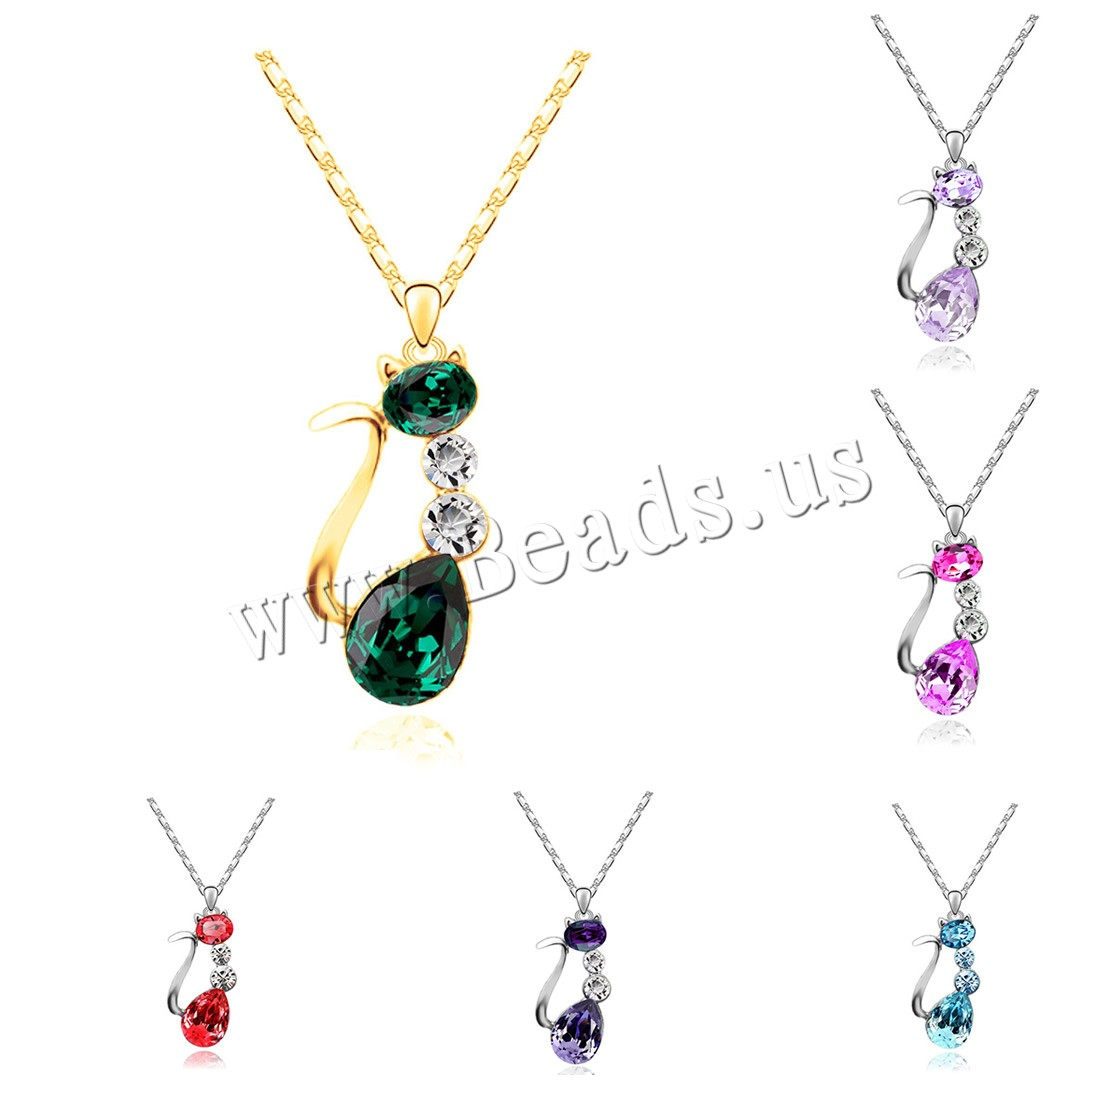 Buy Crystal Zinc Alloy Necklace iron chain & Crystal 5cm extender chain Cat plated bar chain & woman & faceted & rhinestone colors choice lead & cadmium free 35x16mm Sold Per Approx 15.5 Inch Strand